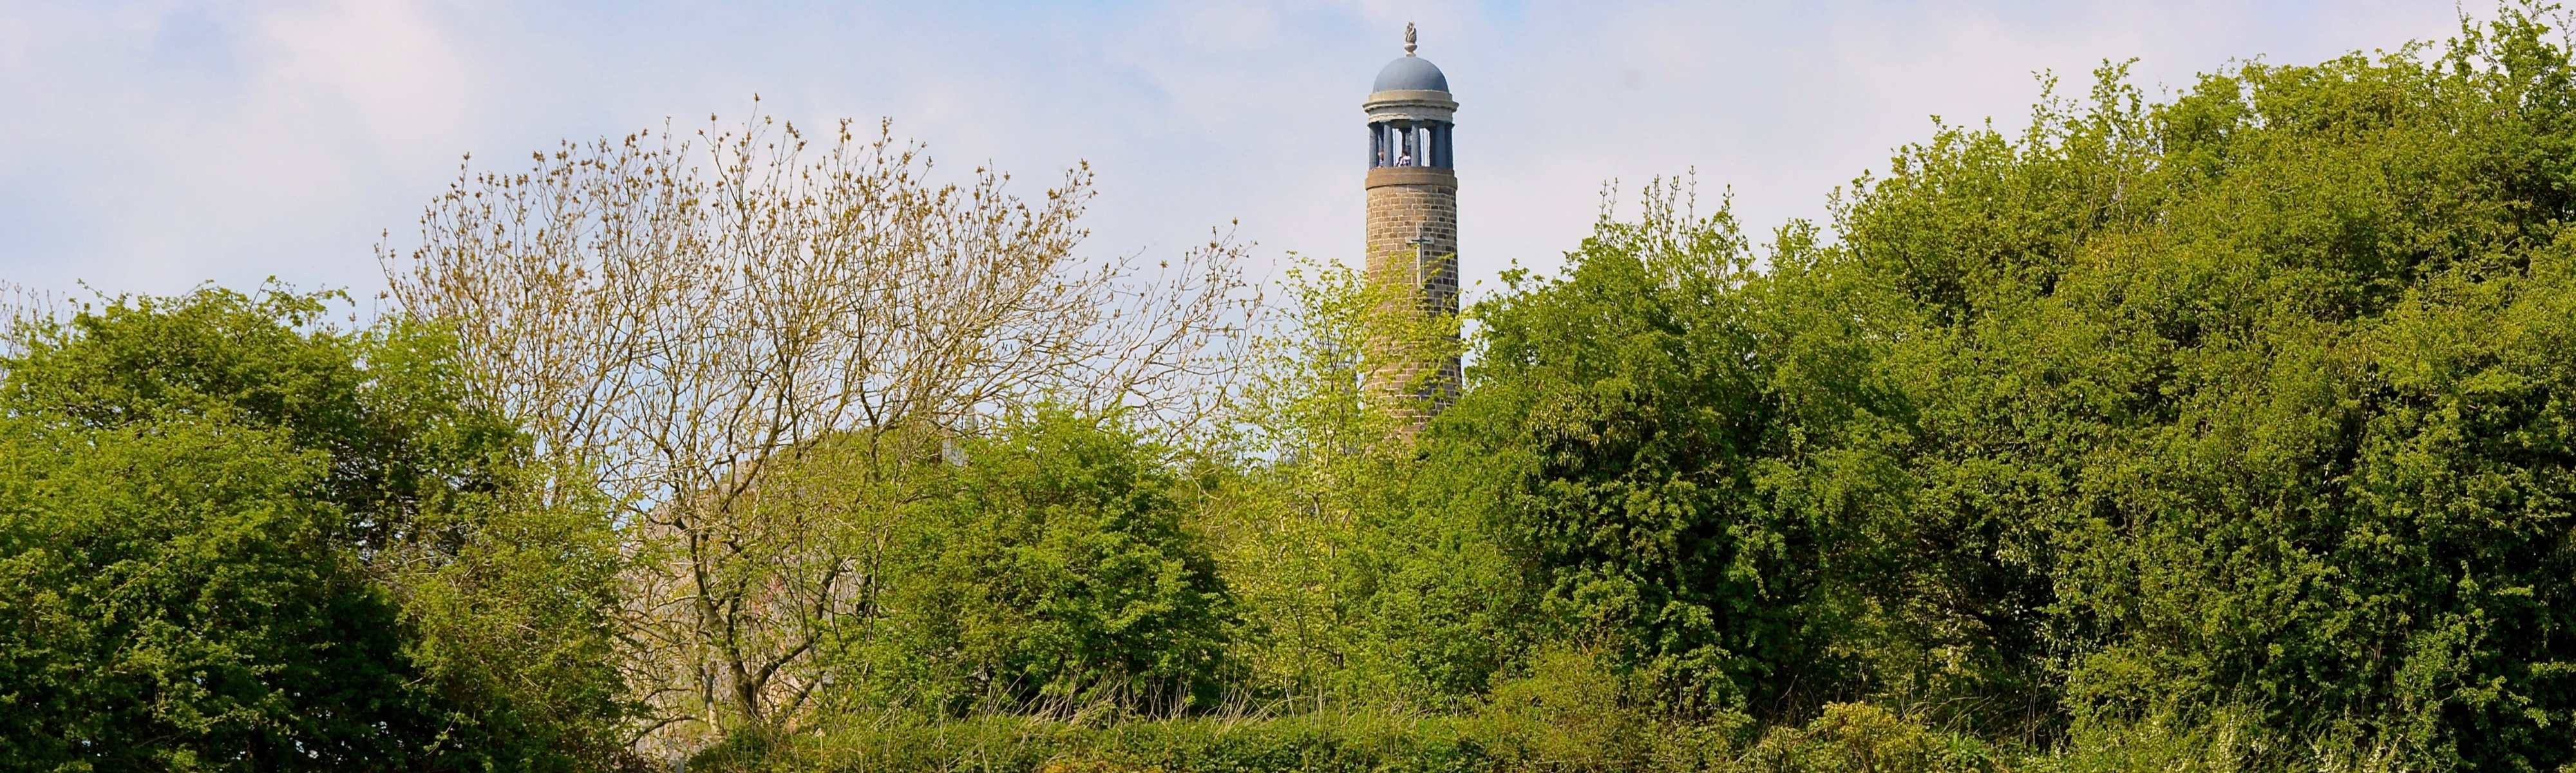 Crich Stand in trees by Paul Yorke